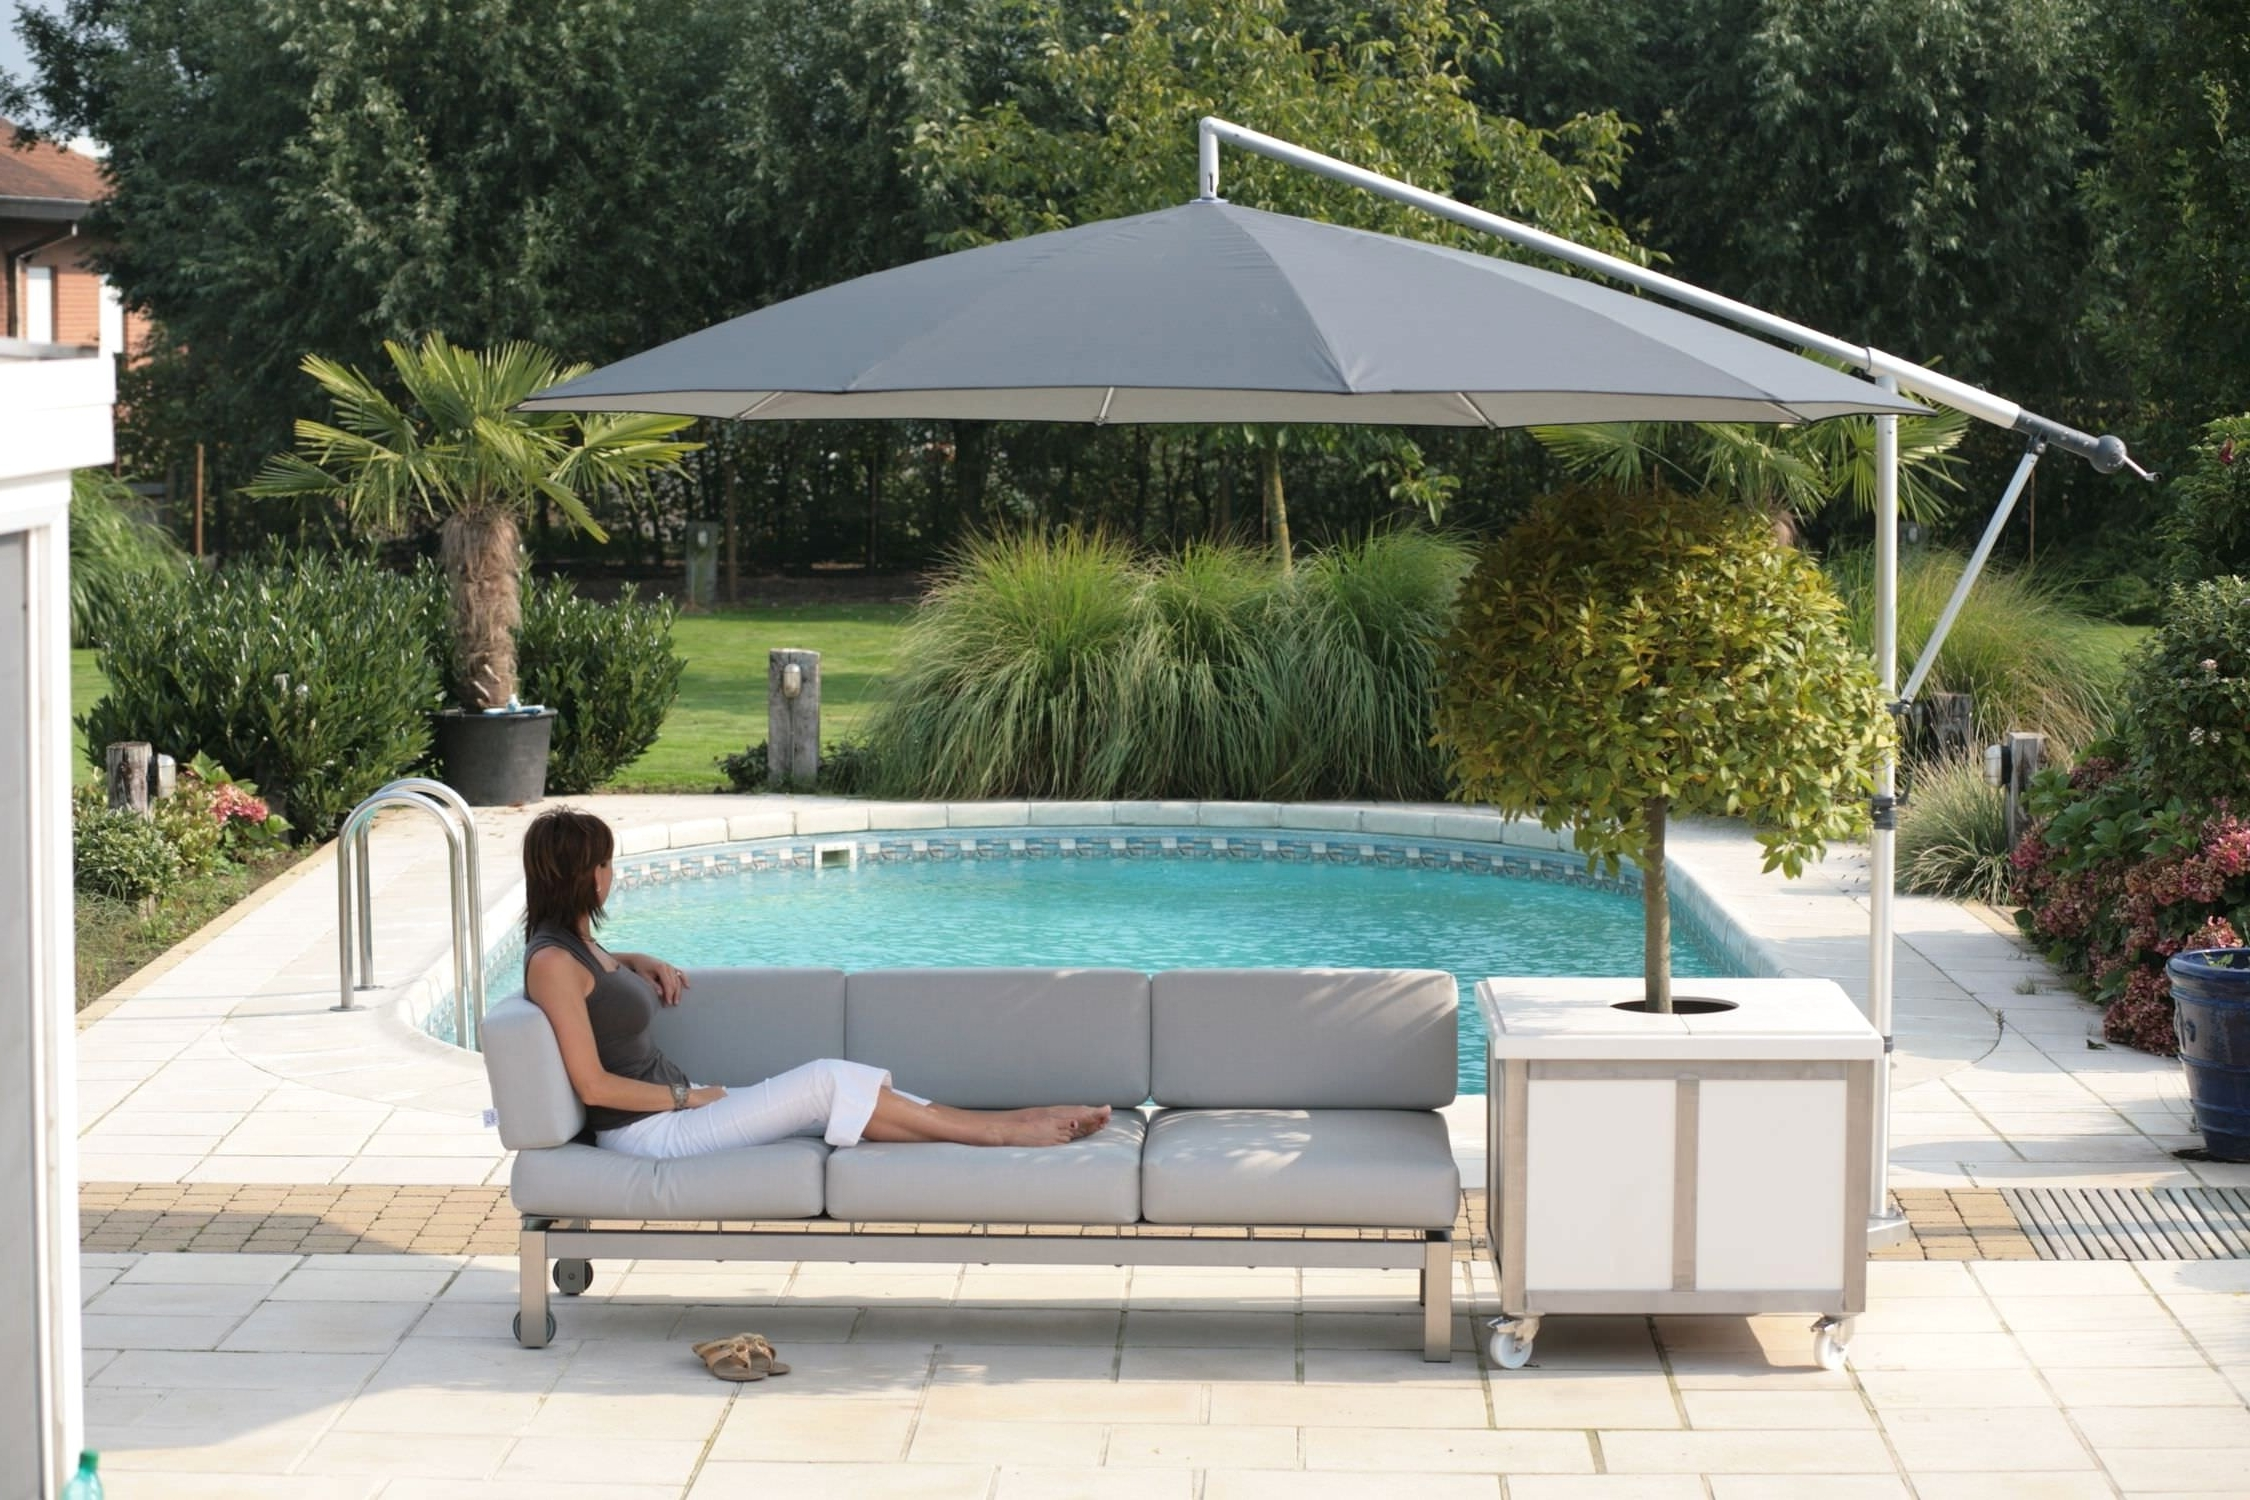 How To Clean Patio Umbrella Awesome Your Unusual Patio Ideas Part 4 Intended For 2019 Unusual Patio Umbrellas (Gallery 10 of 20)